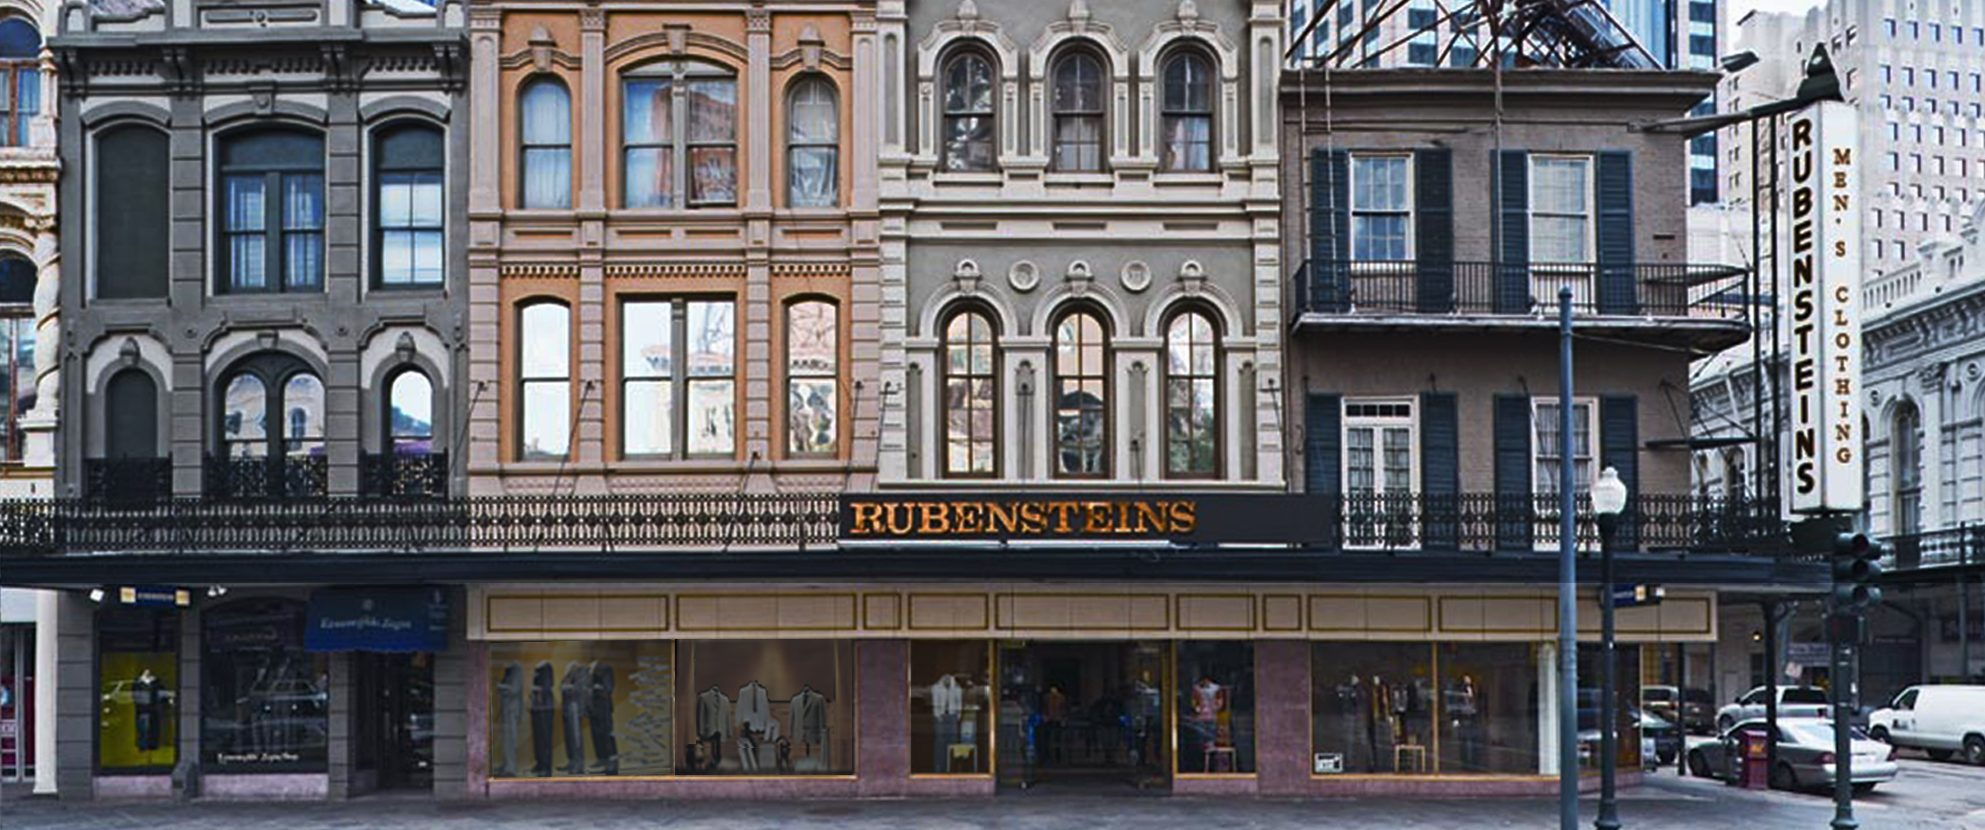 Rubensteins New Orleans - About Us